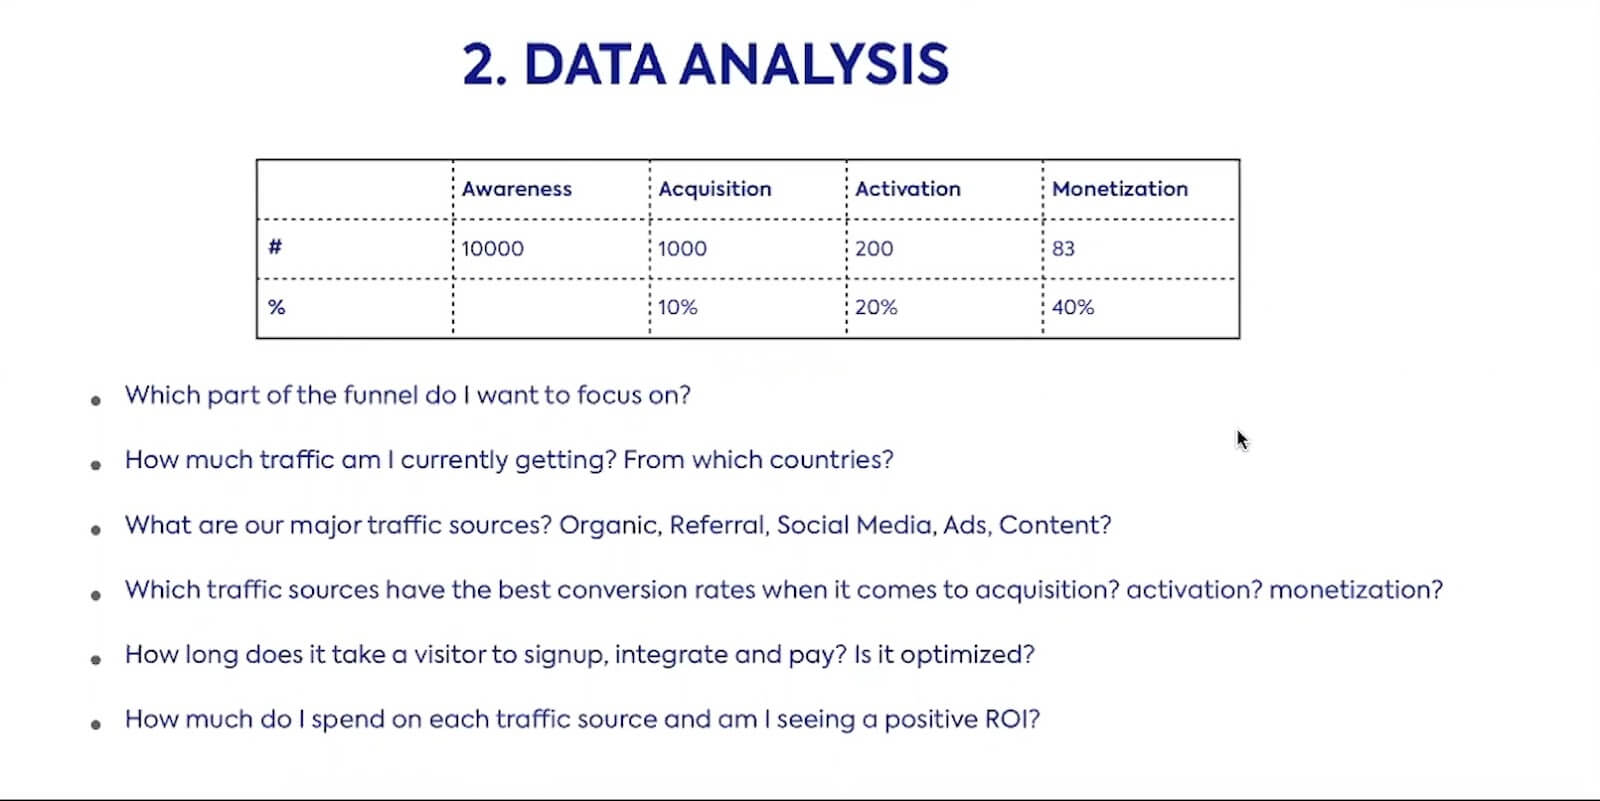 Data Analysis slide detailing the questions below.